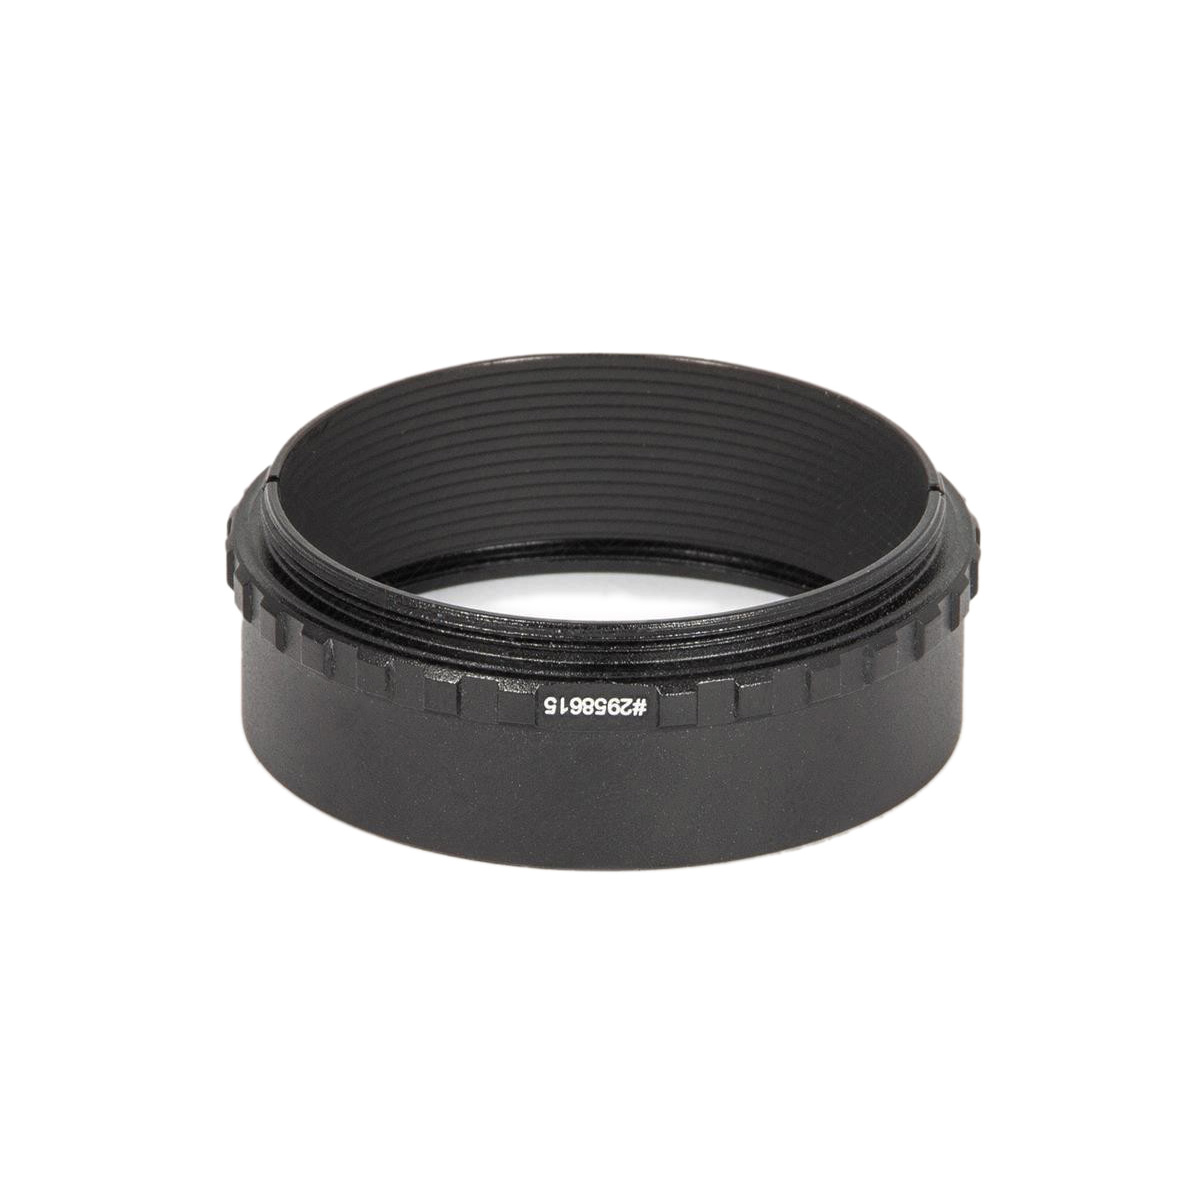 Baader M48 Extension Tube 15mm